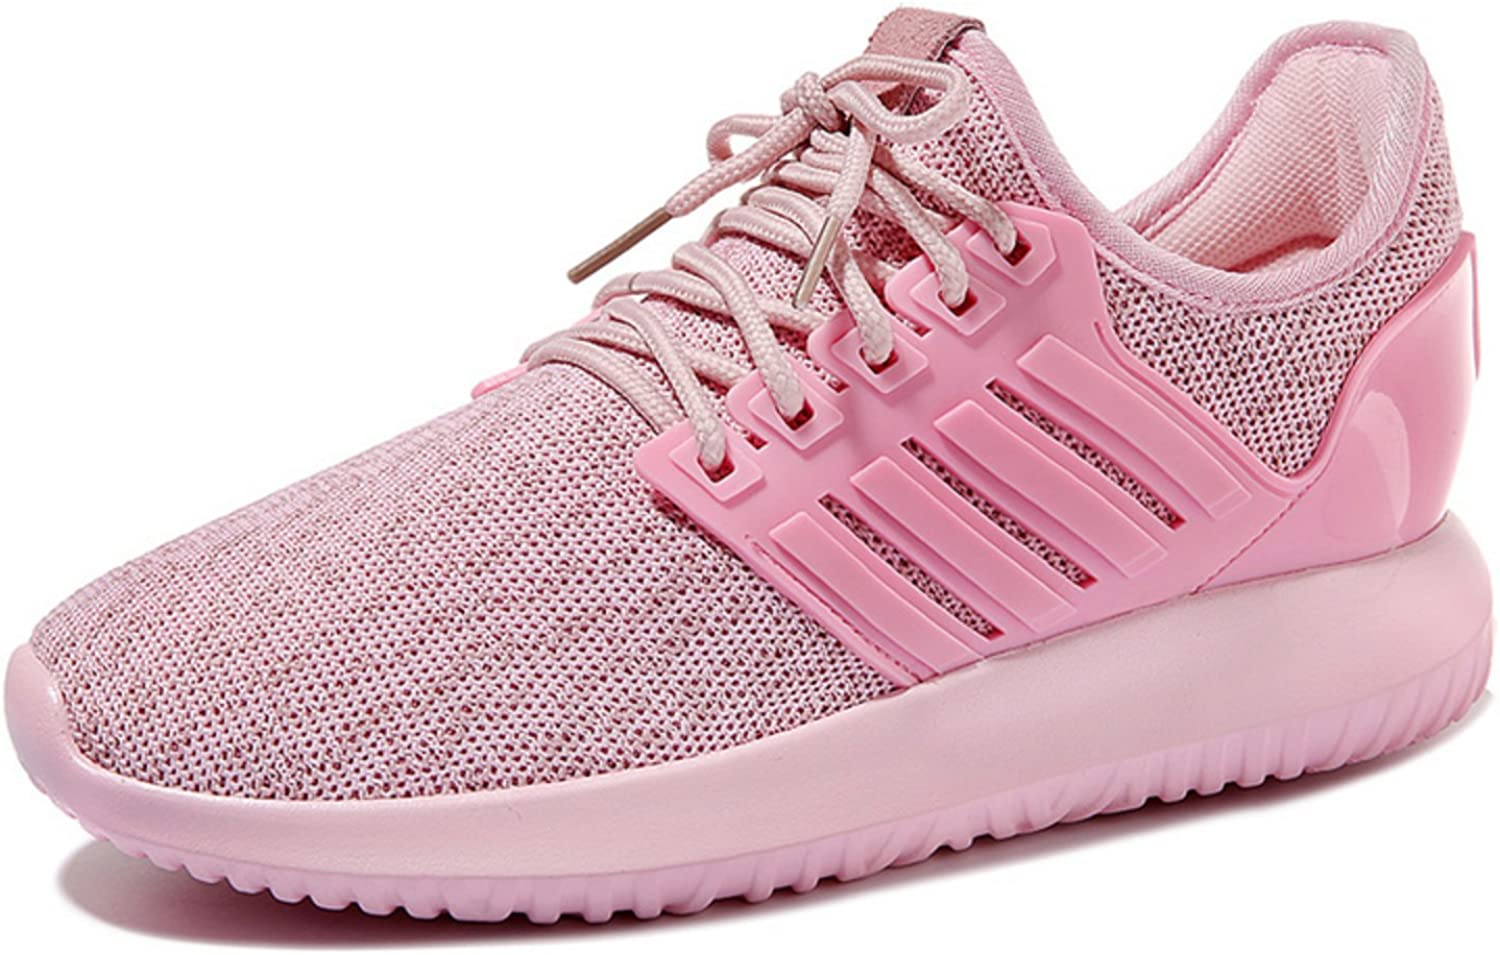 Lusam feeling Womens Knit Running shoes Woman Casual Lightweight Athletic Sneakers Breathable Cloth on Top Pink